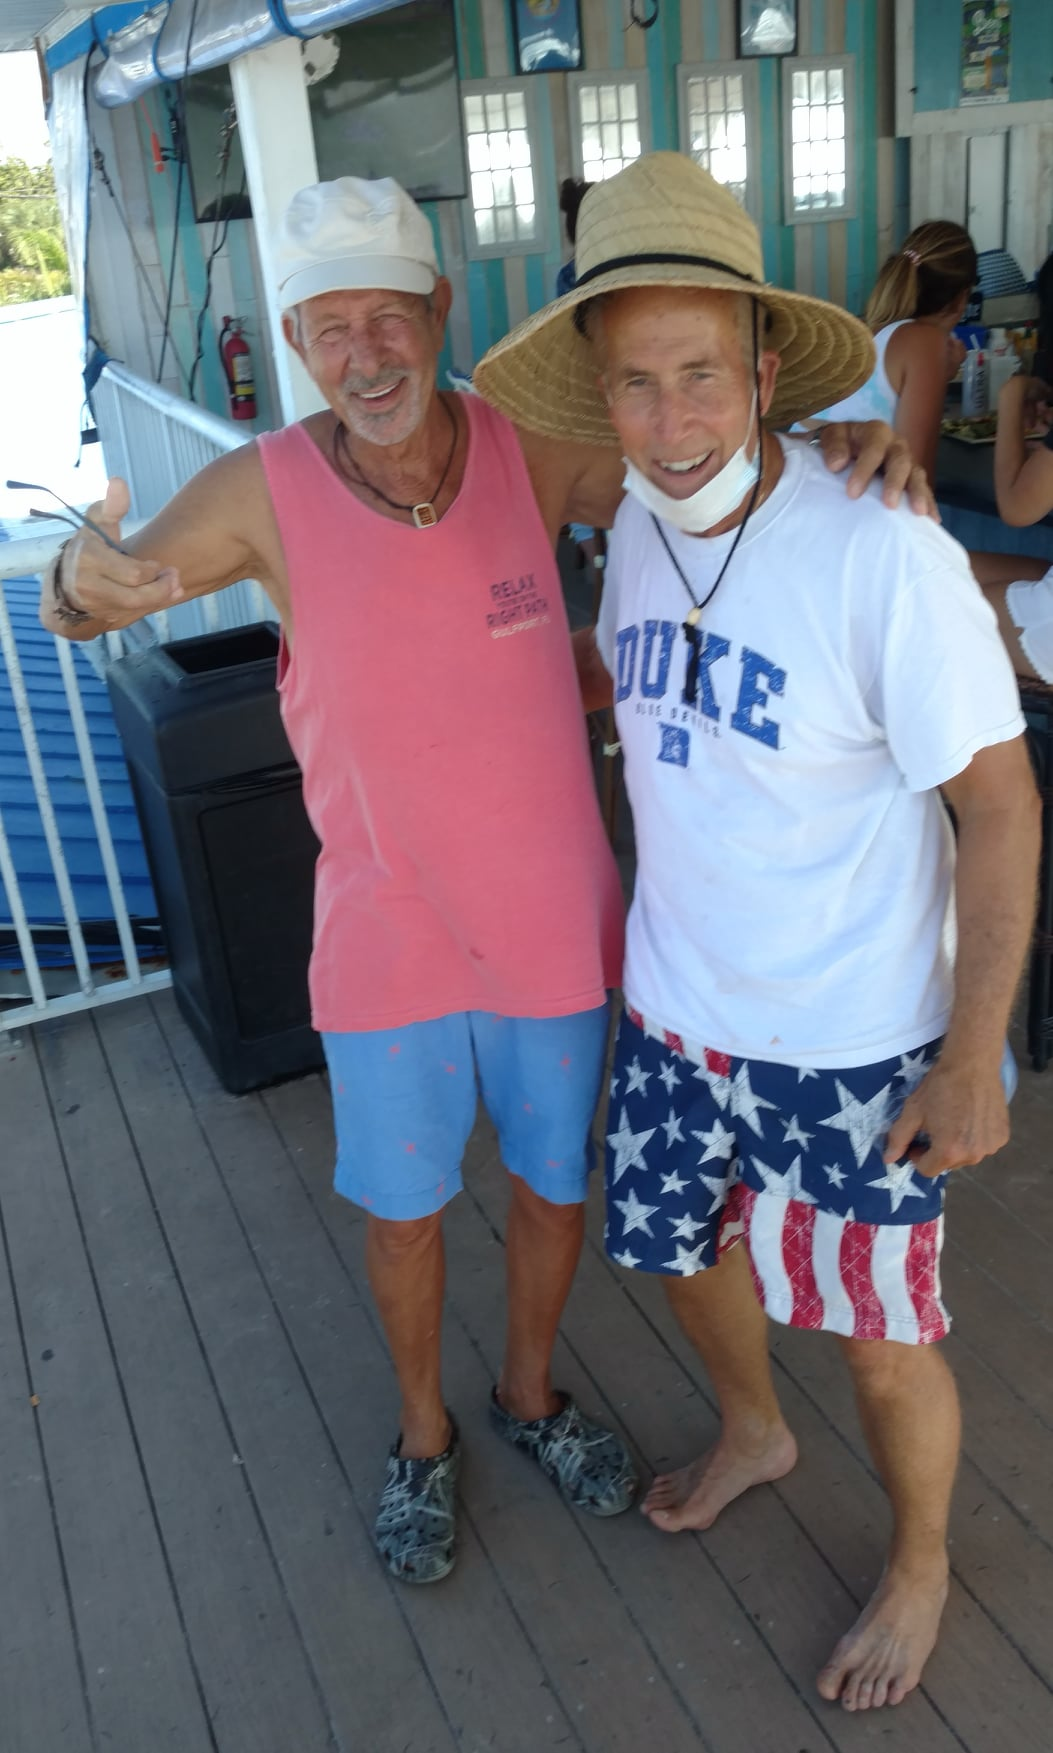 Two men in beach clothes with their arms around each others backs smile at the camera.